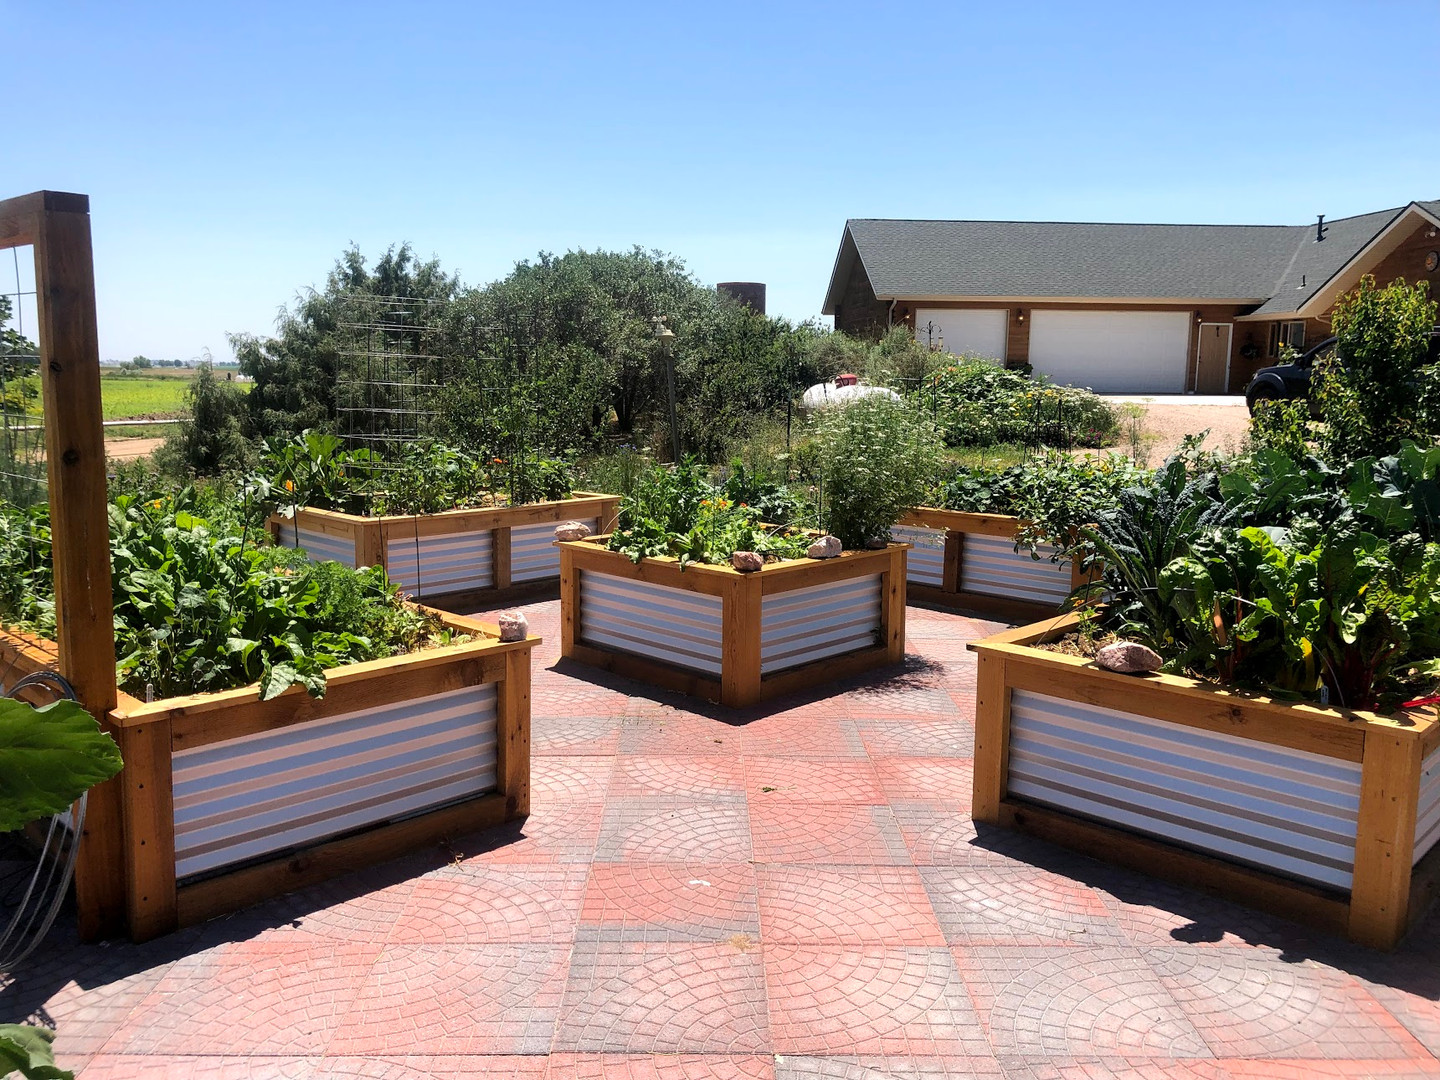 raised bed garden by TMTG